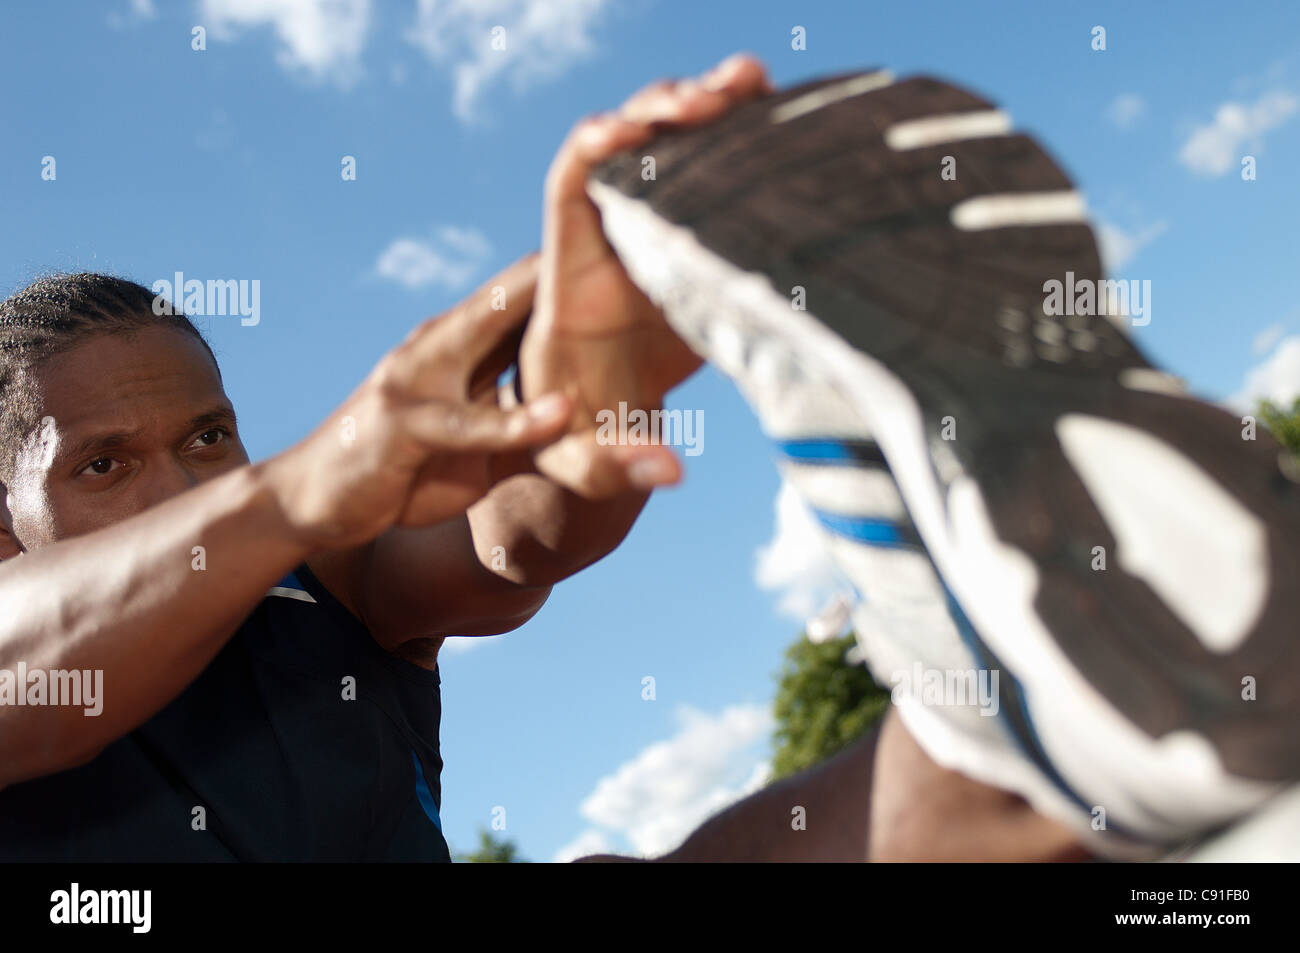 Close up of athlete stretching outdoors - Stock Image